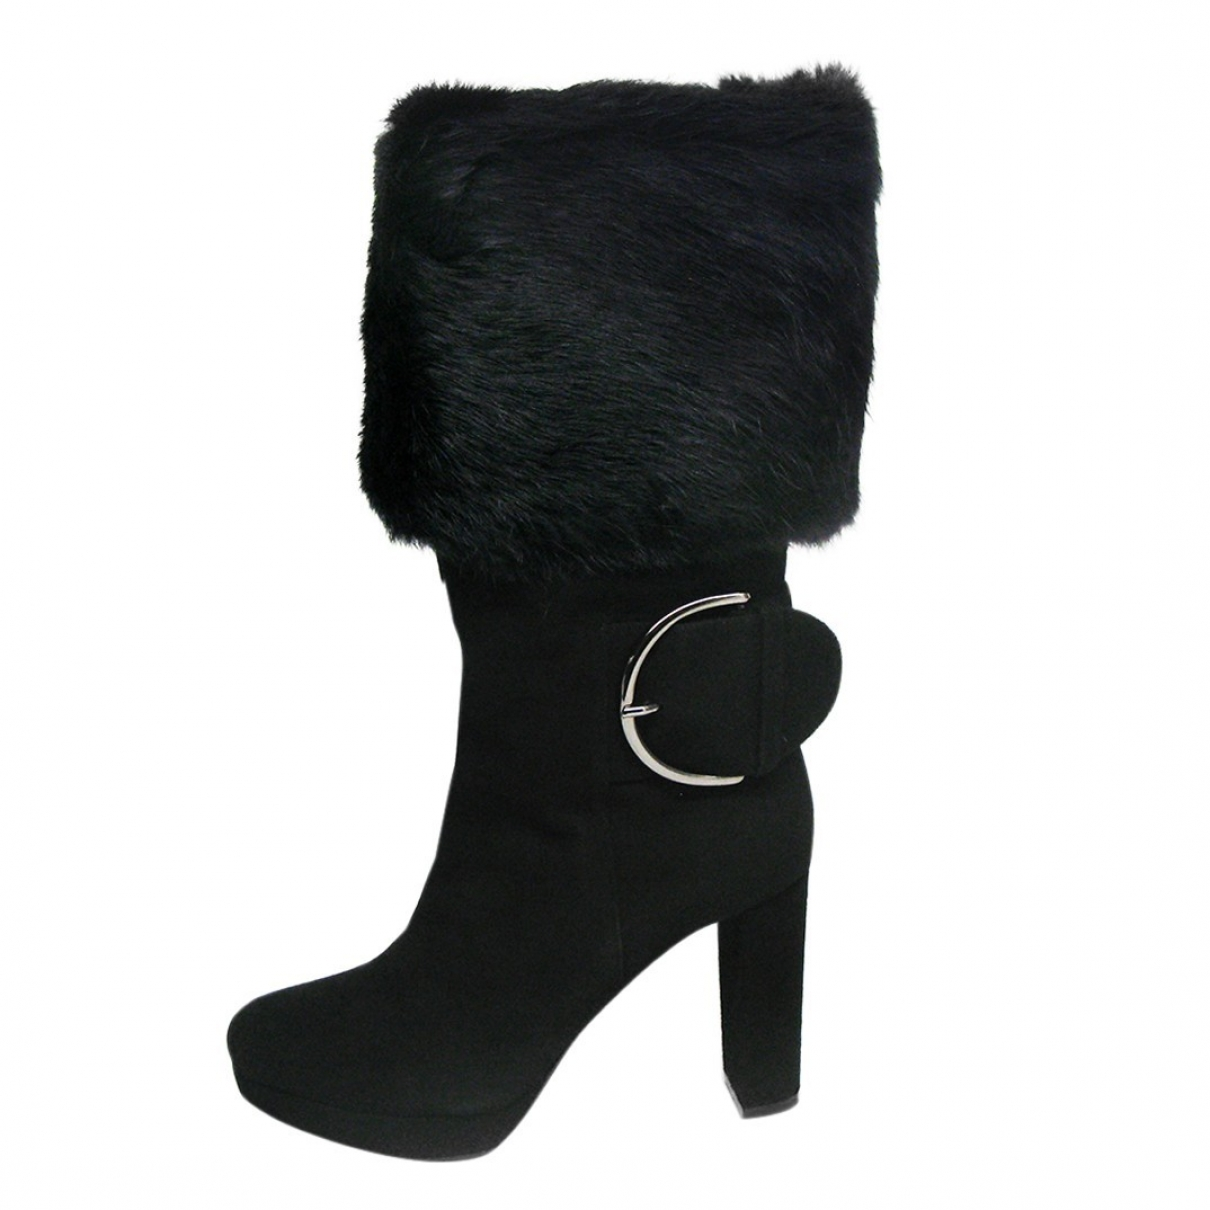 Walter Steiger \N Black Suede Boots for Women 36 EU